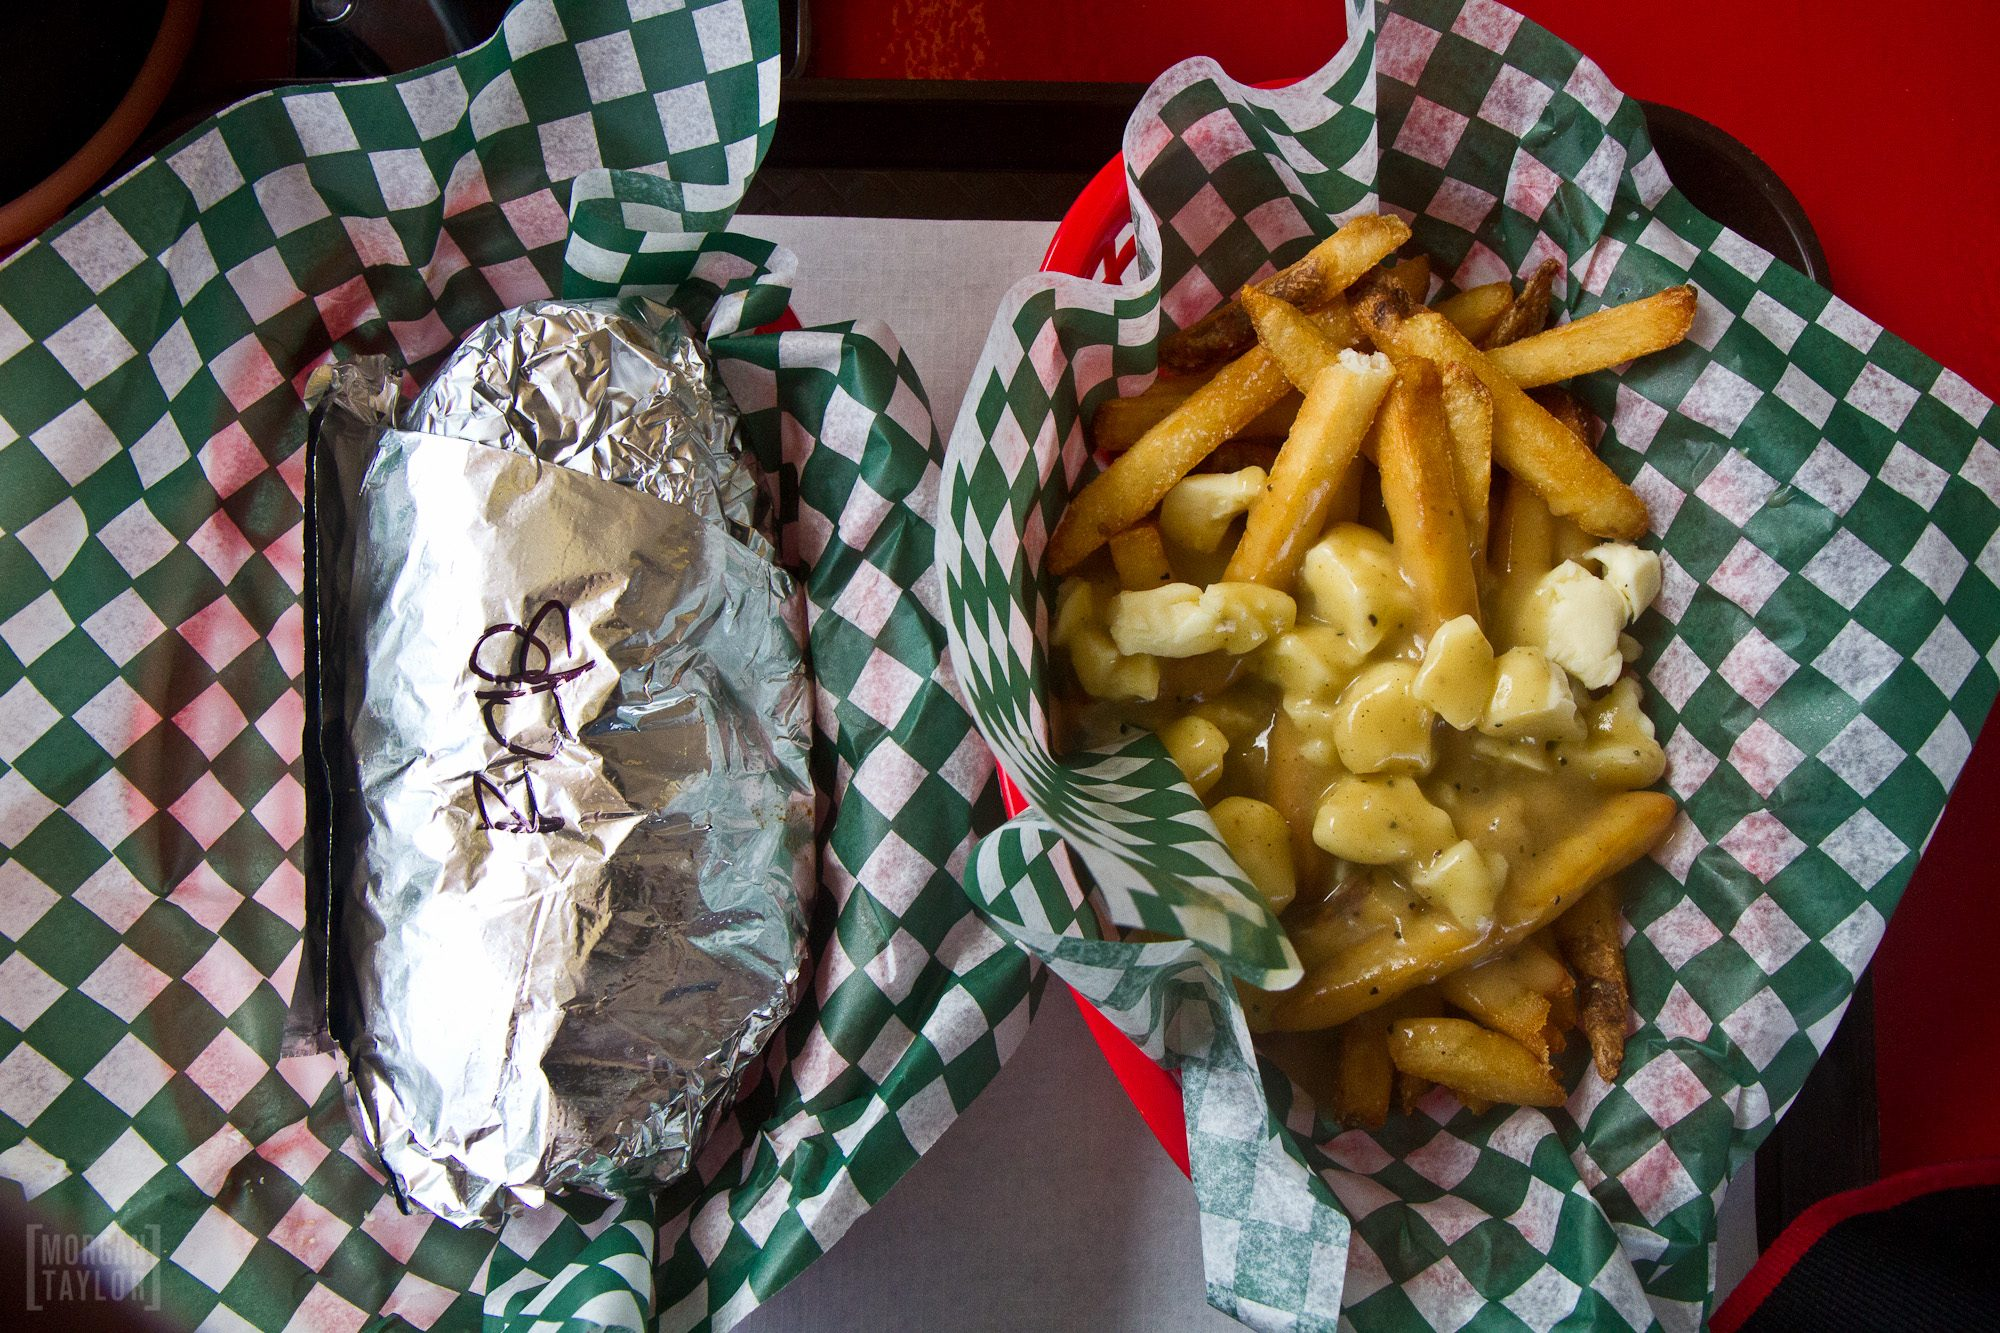 Why yes, I will have the fried chicken poutine with my burrito.